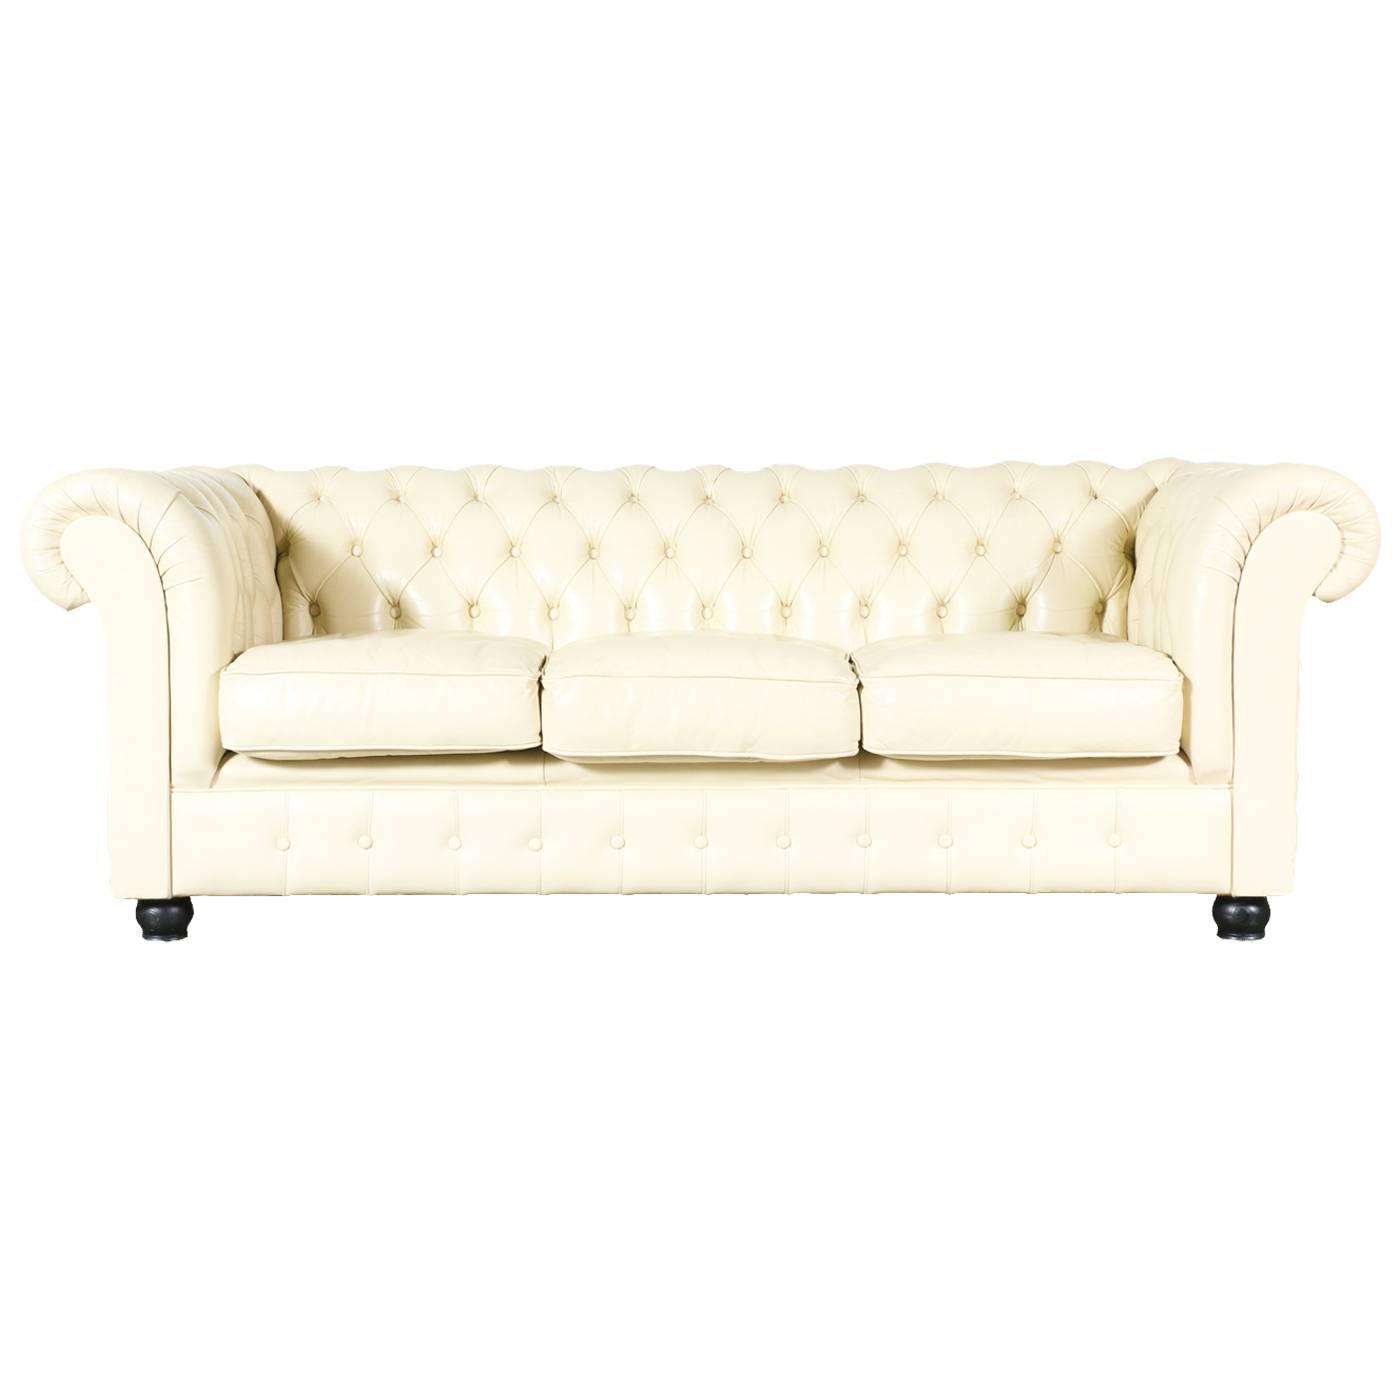 Vintage beige leather chesterfield sofa at 1stdibs - Canape chesterfield beige ...